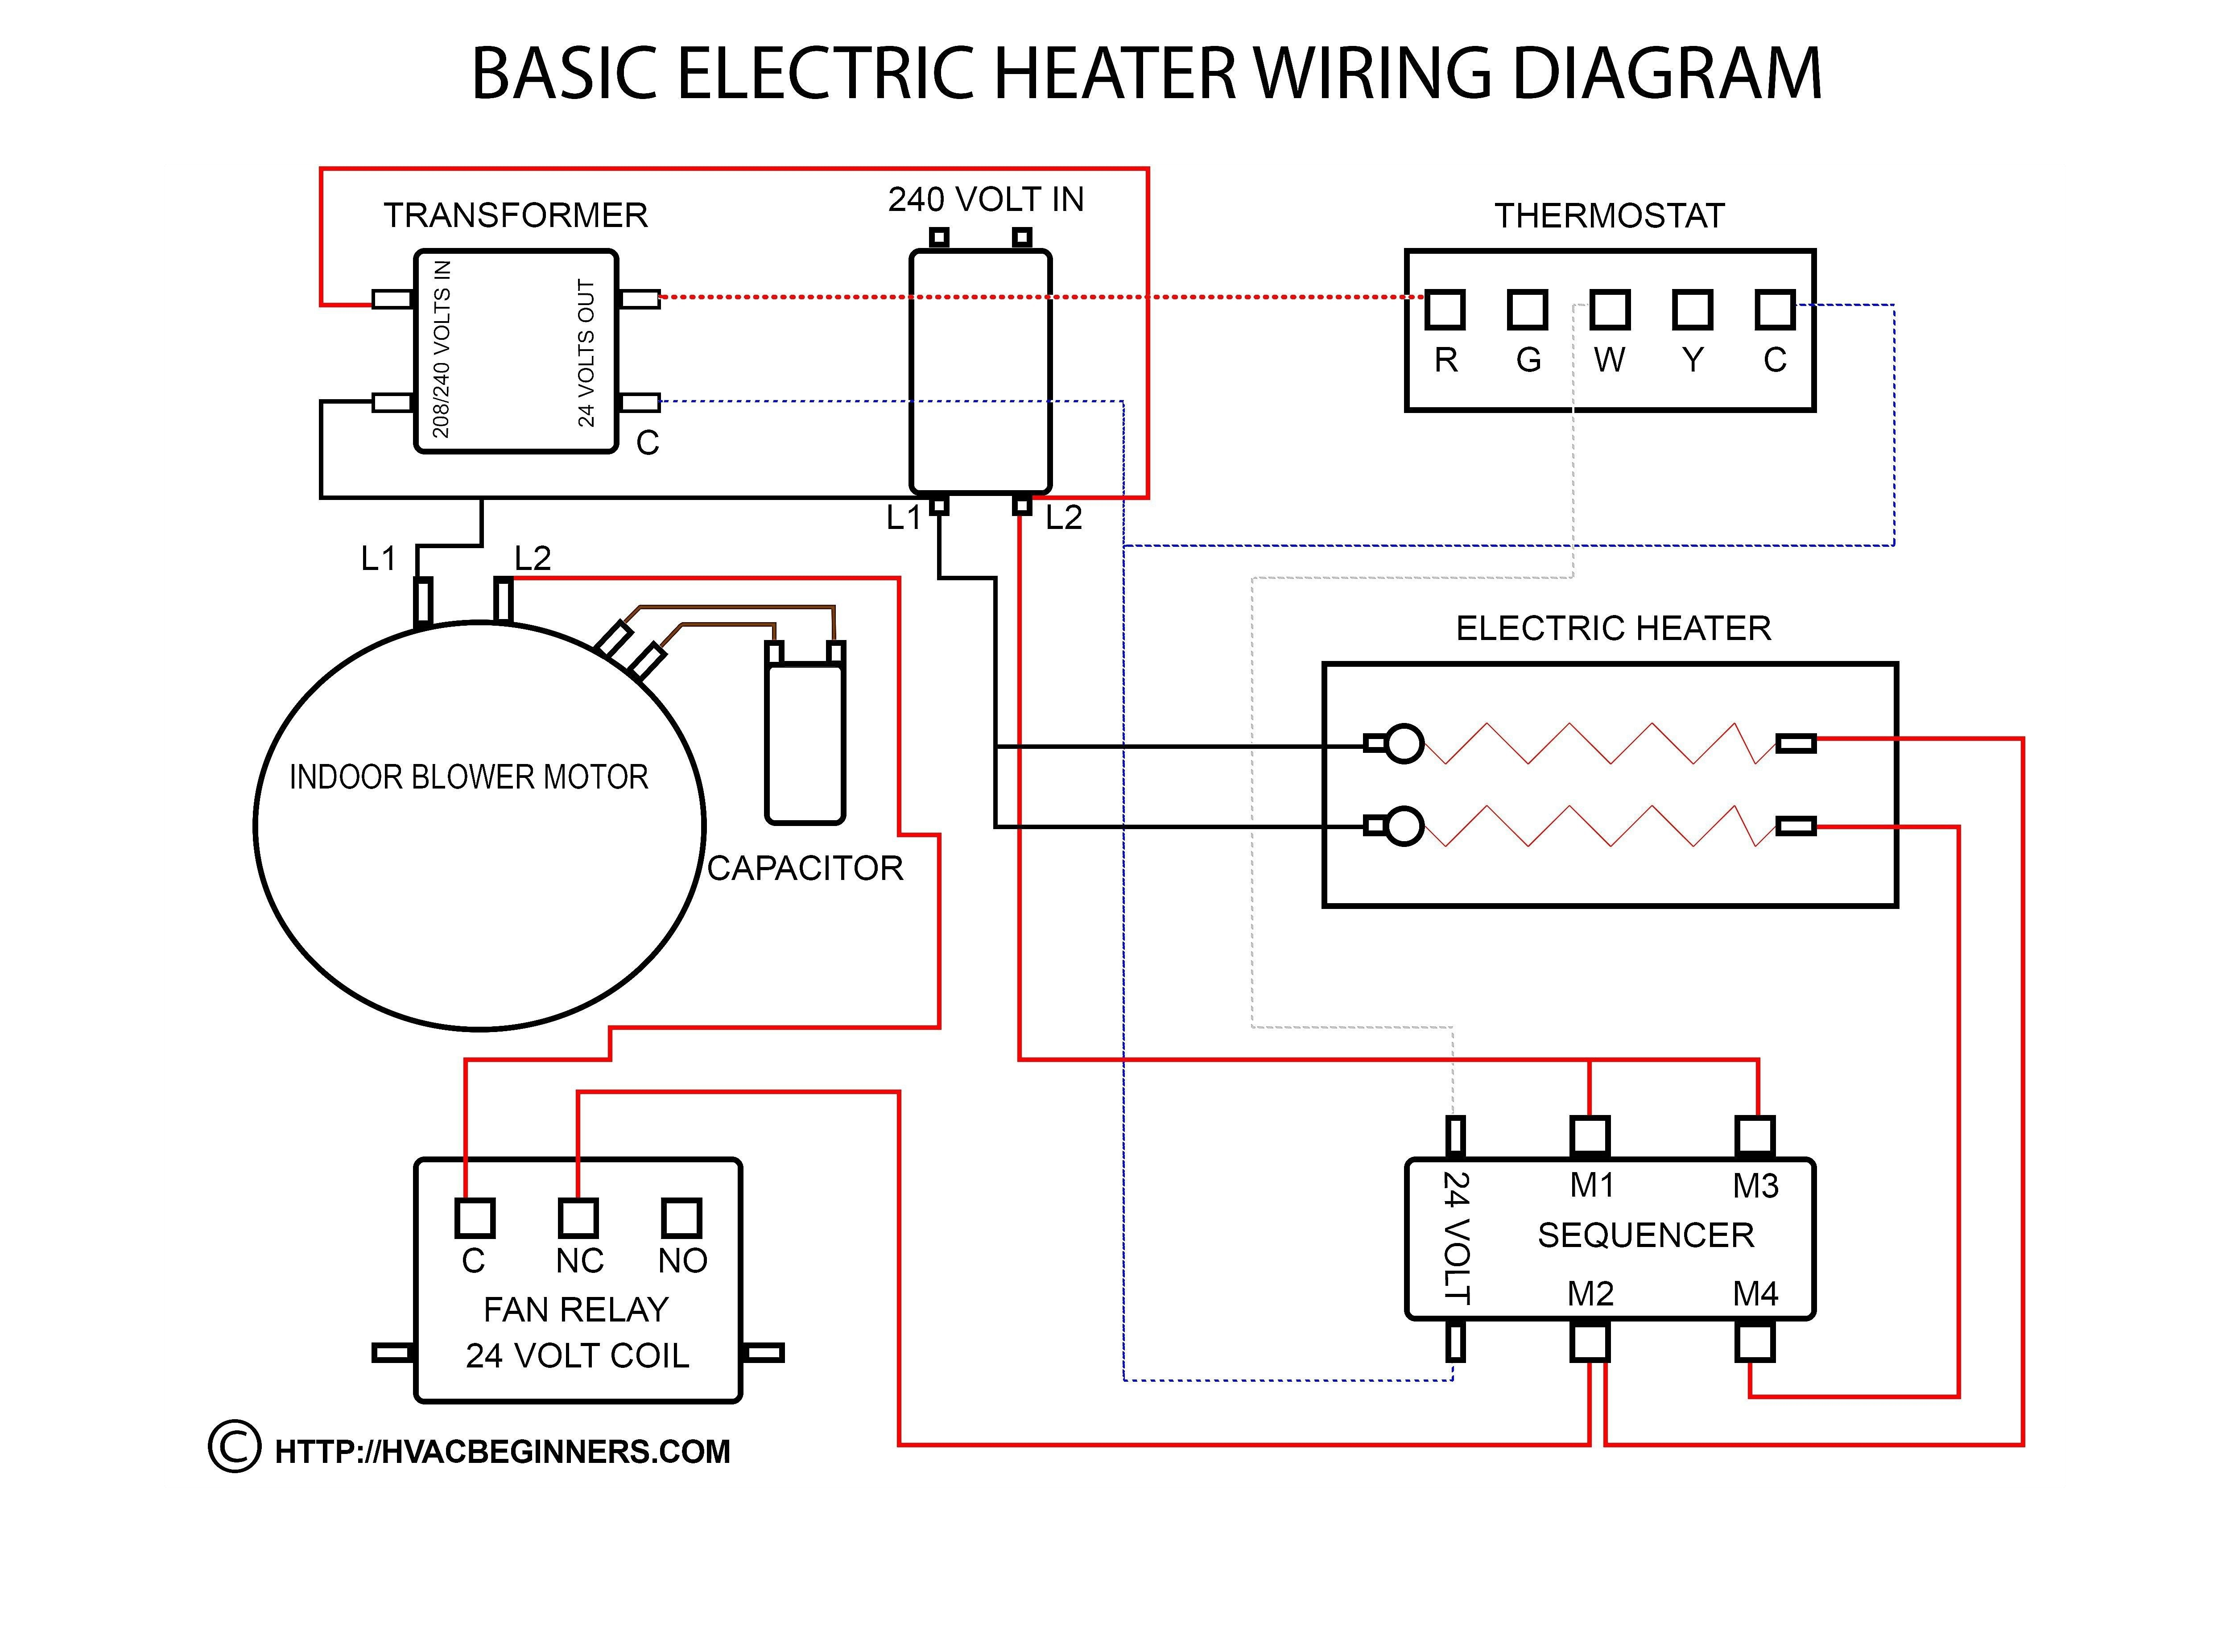 Piaa Wiring Diagram In 2020 Basic Electrical Wiring Thermostat Wiring Electrical Wiring Diagram